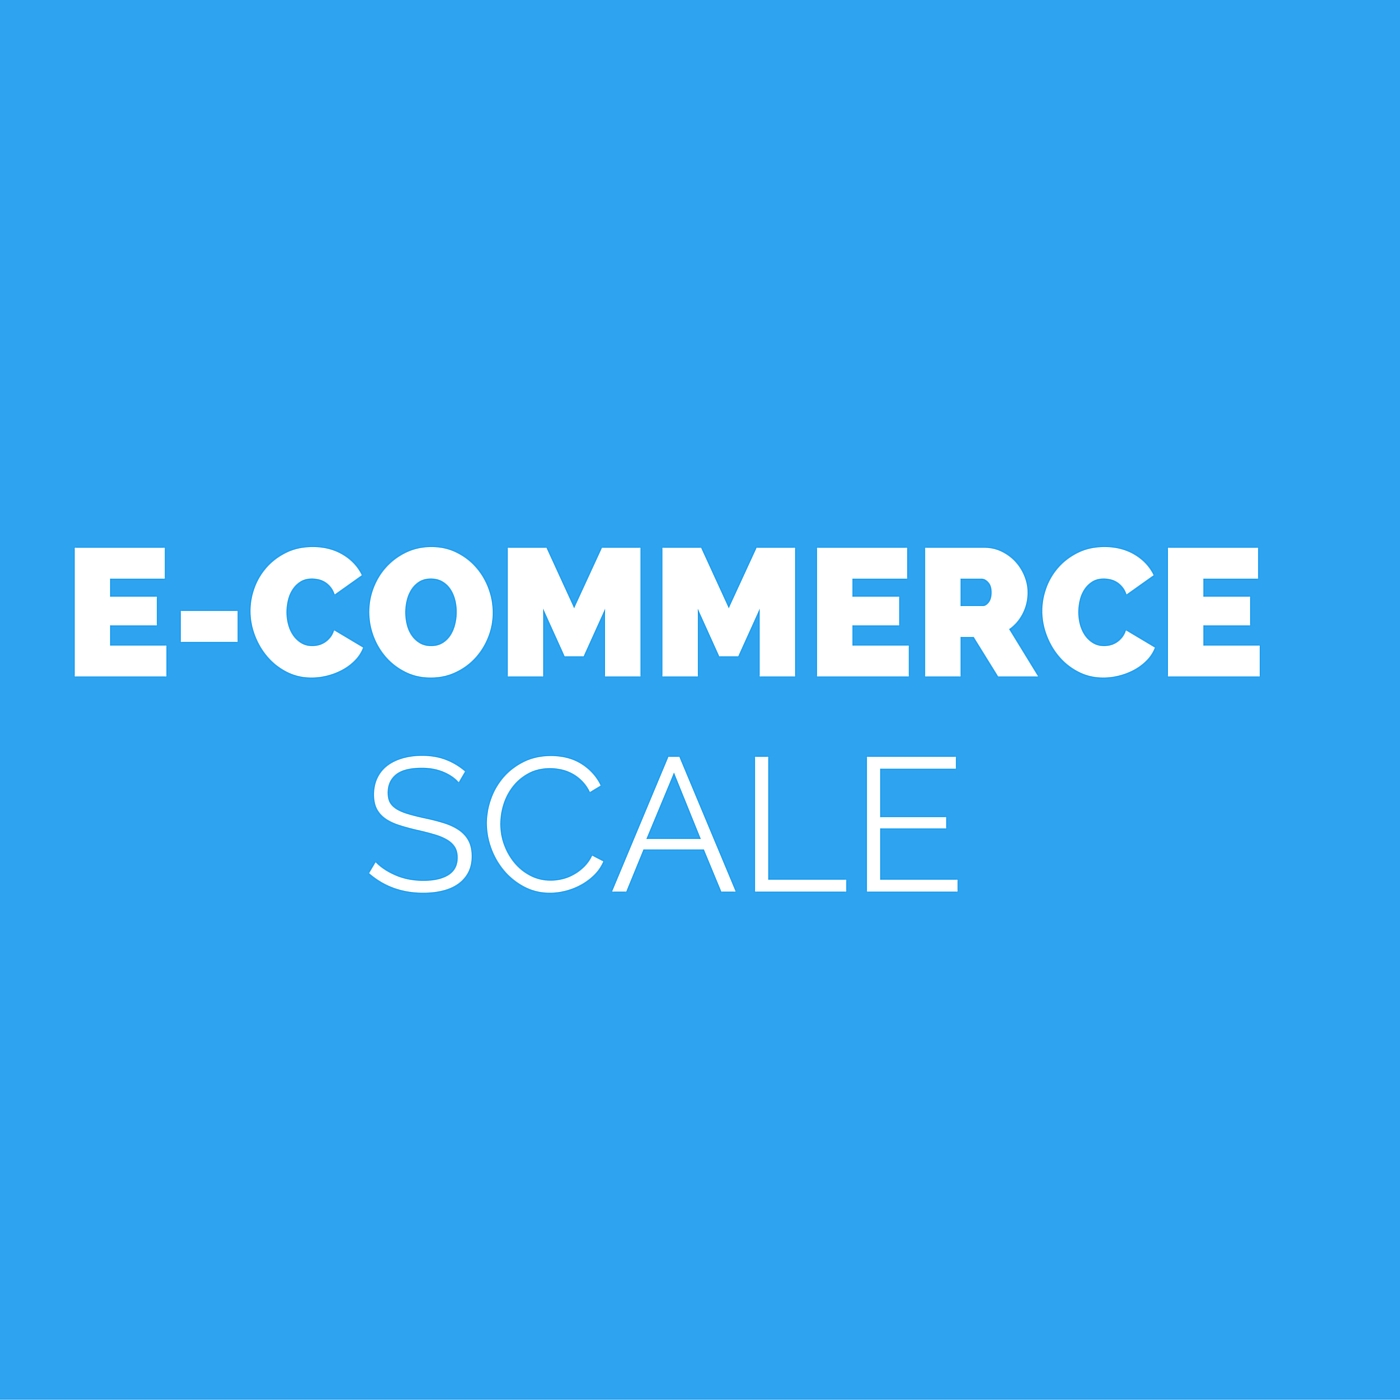 eCommerce Scale: For Established eCommerce Stores // Like eCommerce Fuel and My Wife Quit Her Job